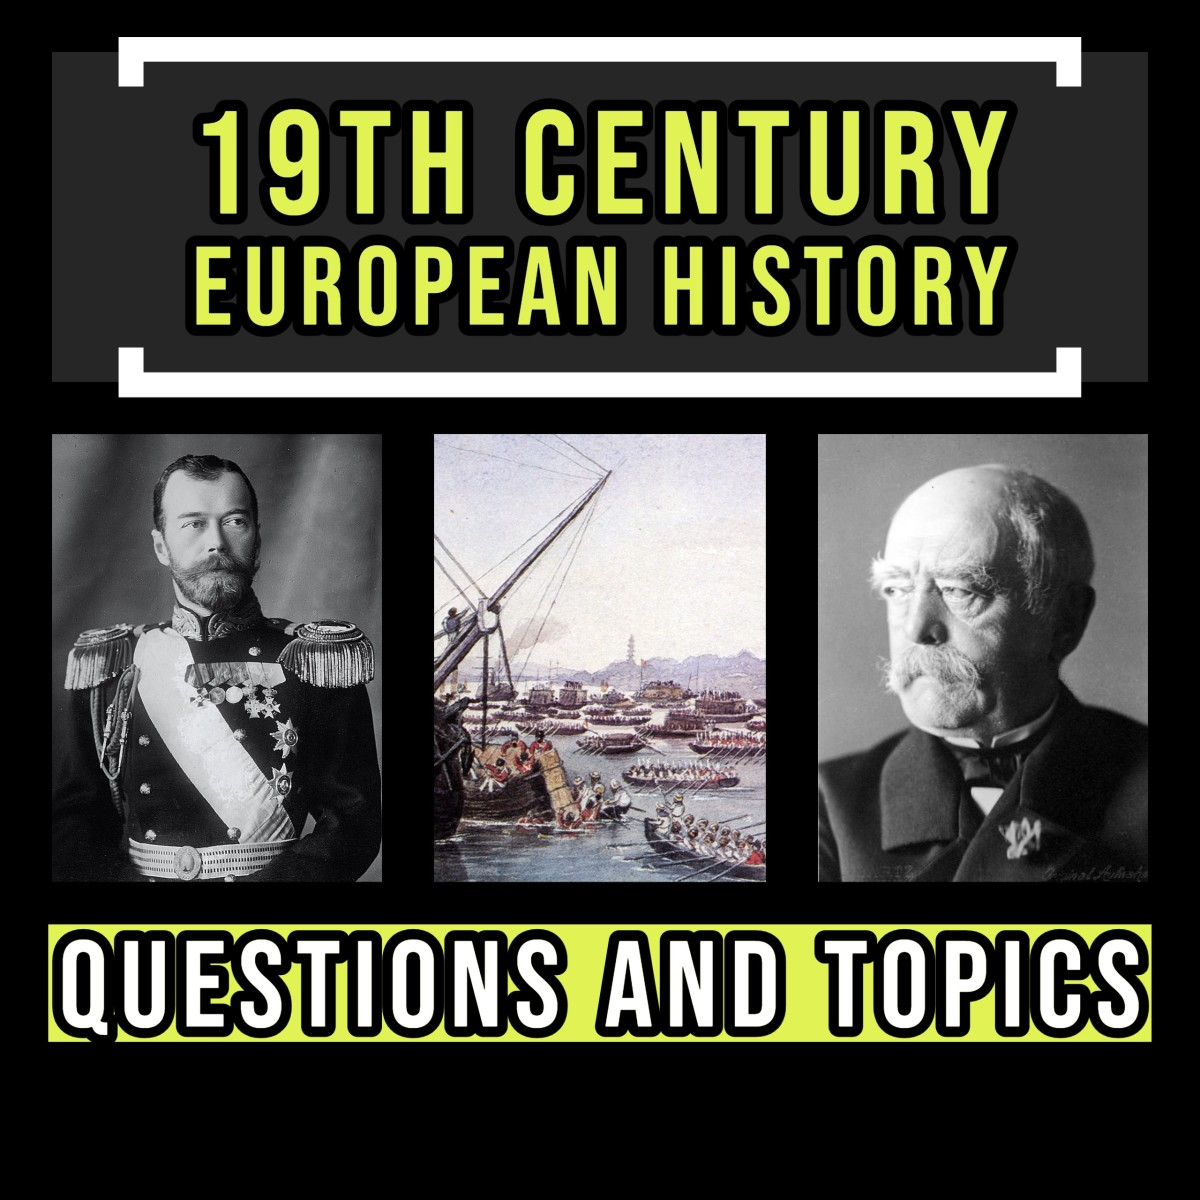 19th Century European history topics and questions.